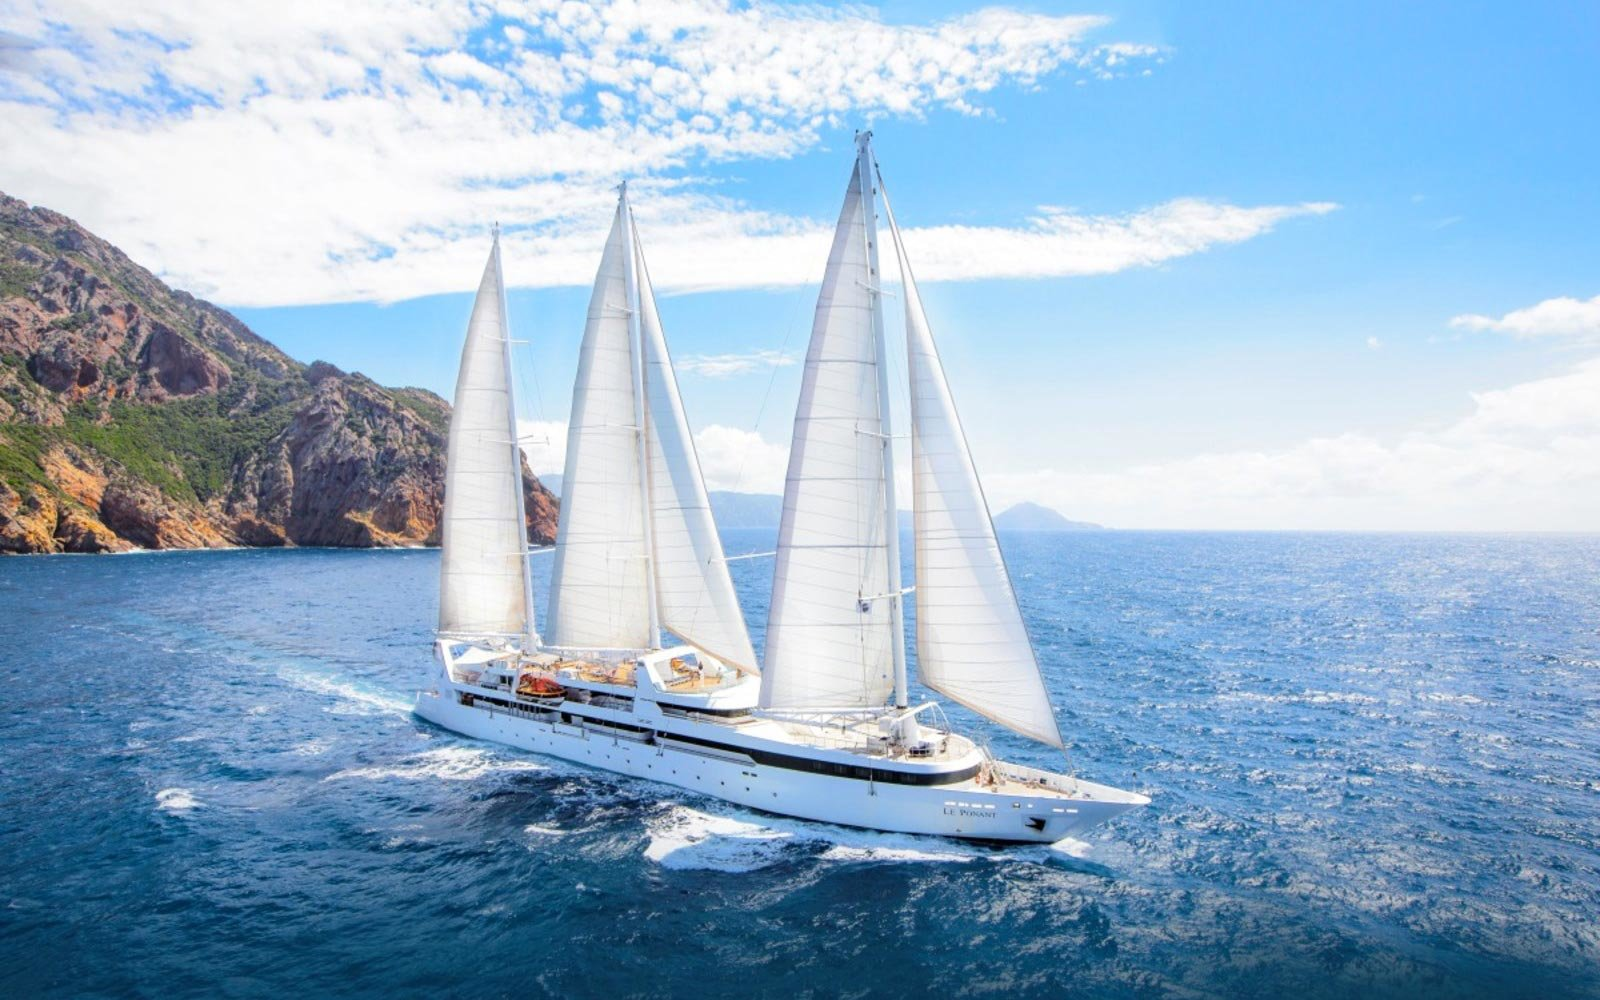 The Best Small Ship Experiences in the Mediterranean | Travel + Leisure